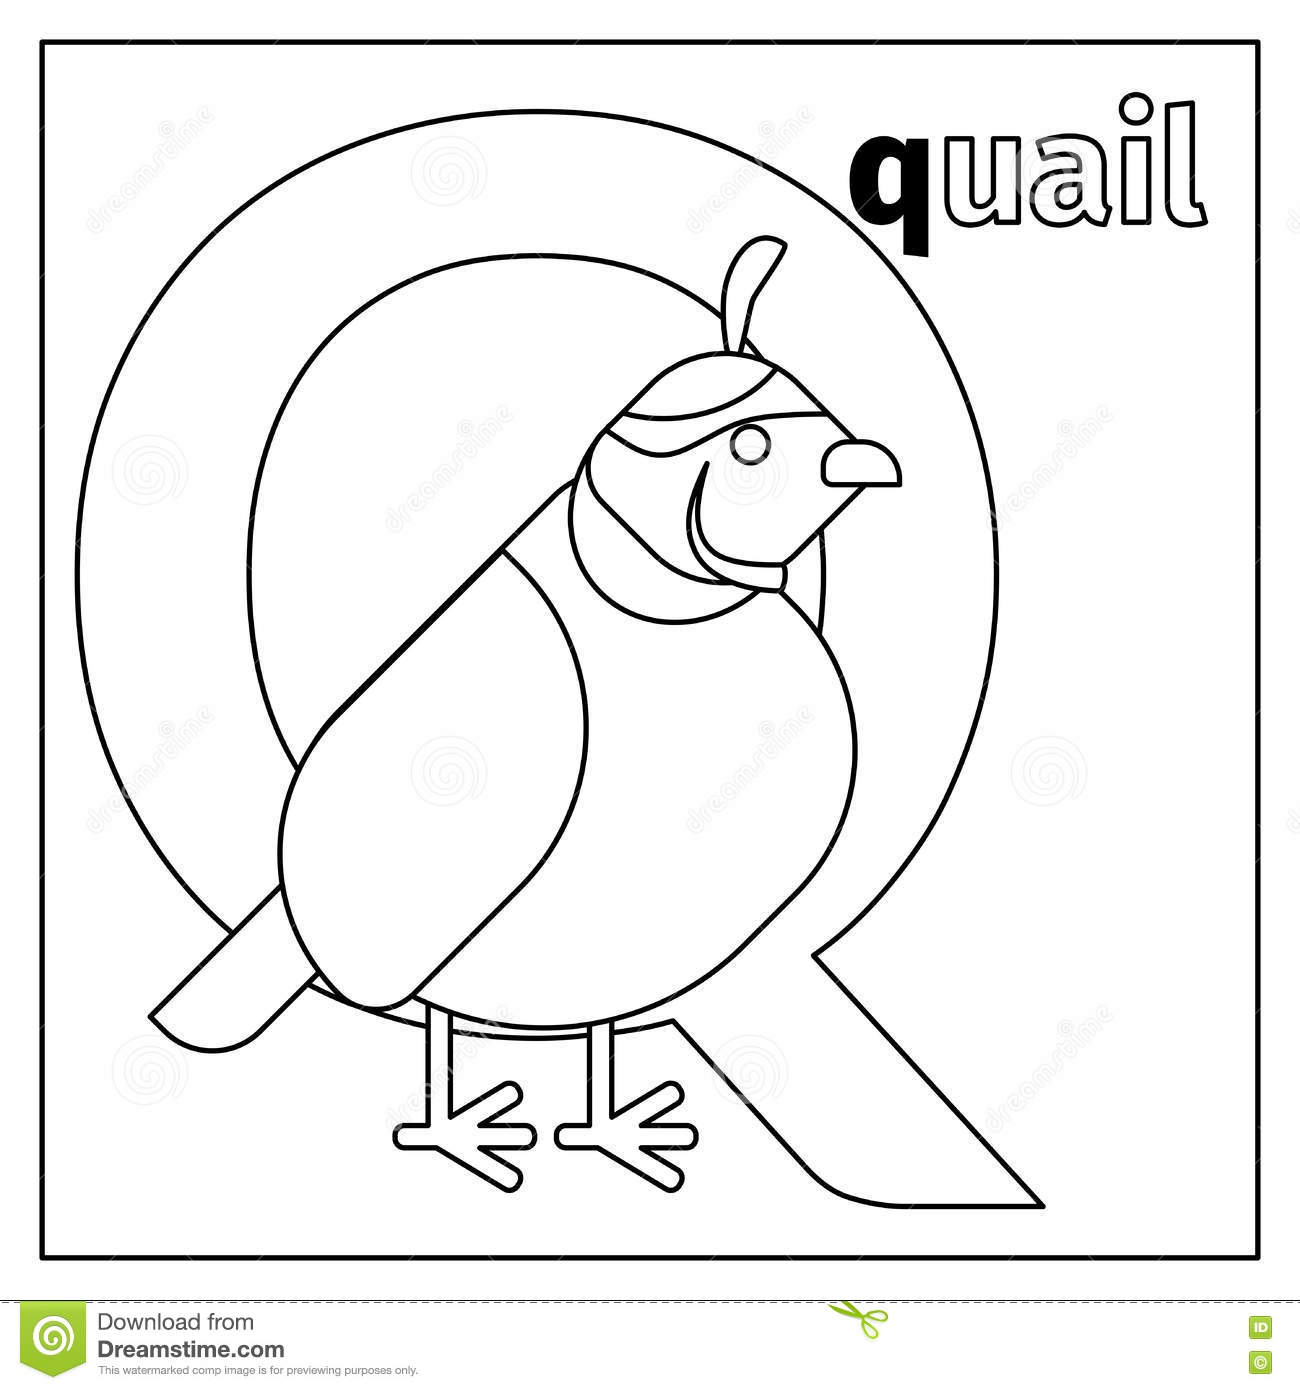 letter a coloring pages quail bird character vector vector cartoondealer 41157